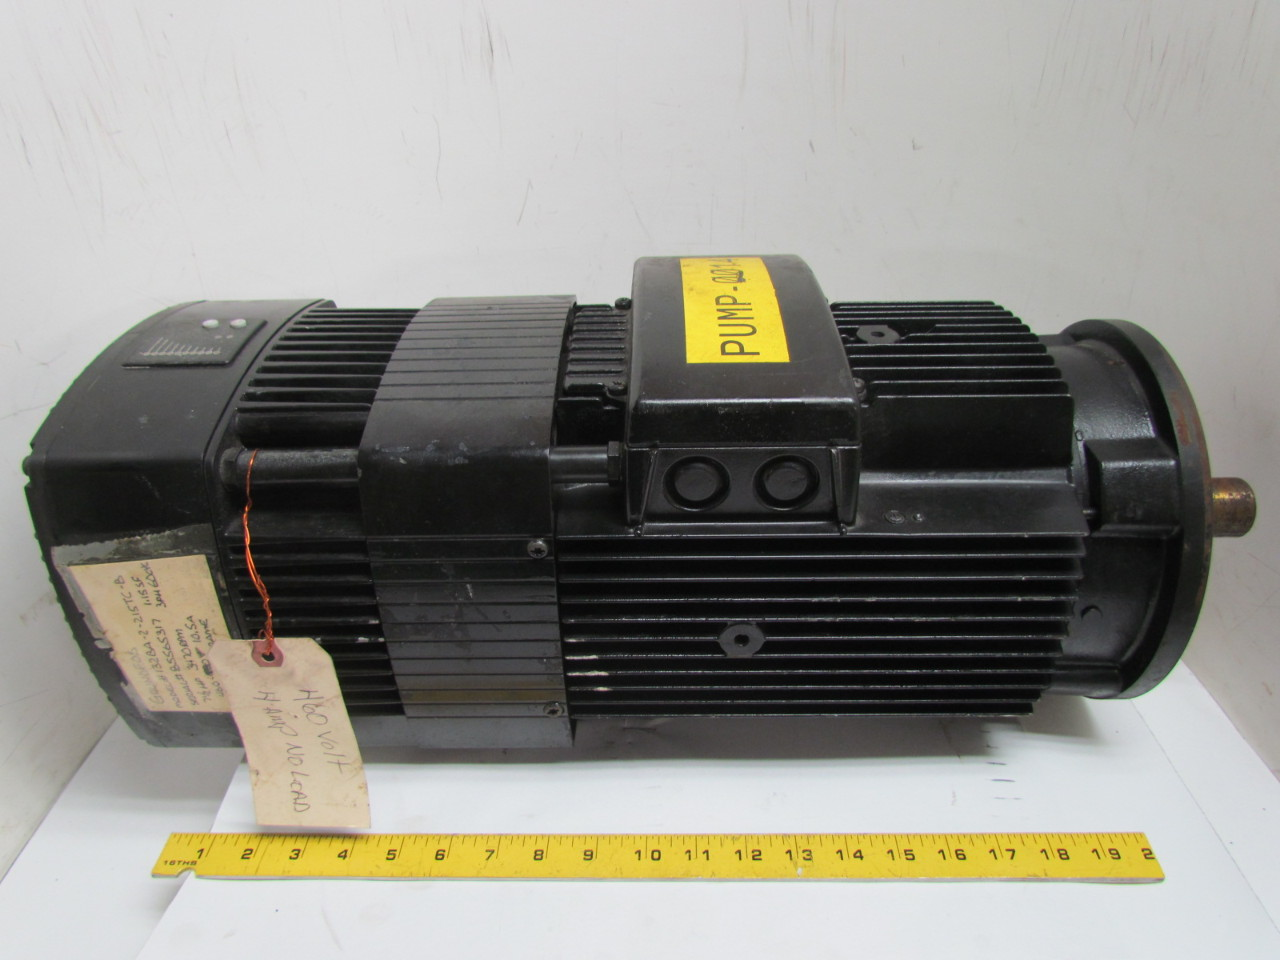 Grundfos 132ba 2 215tc b variable speed pump motor 7 1 2 for 2 hp variable speed motor